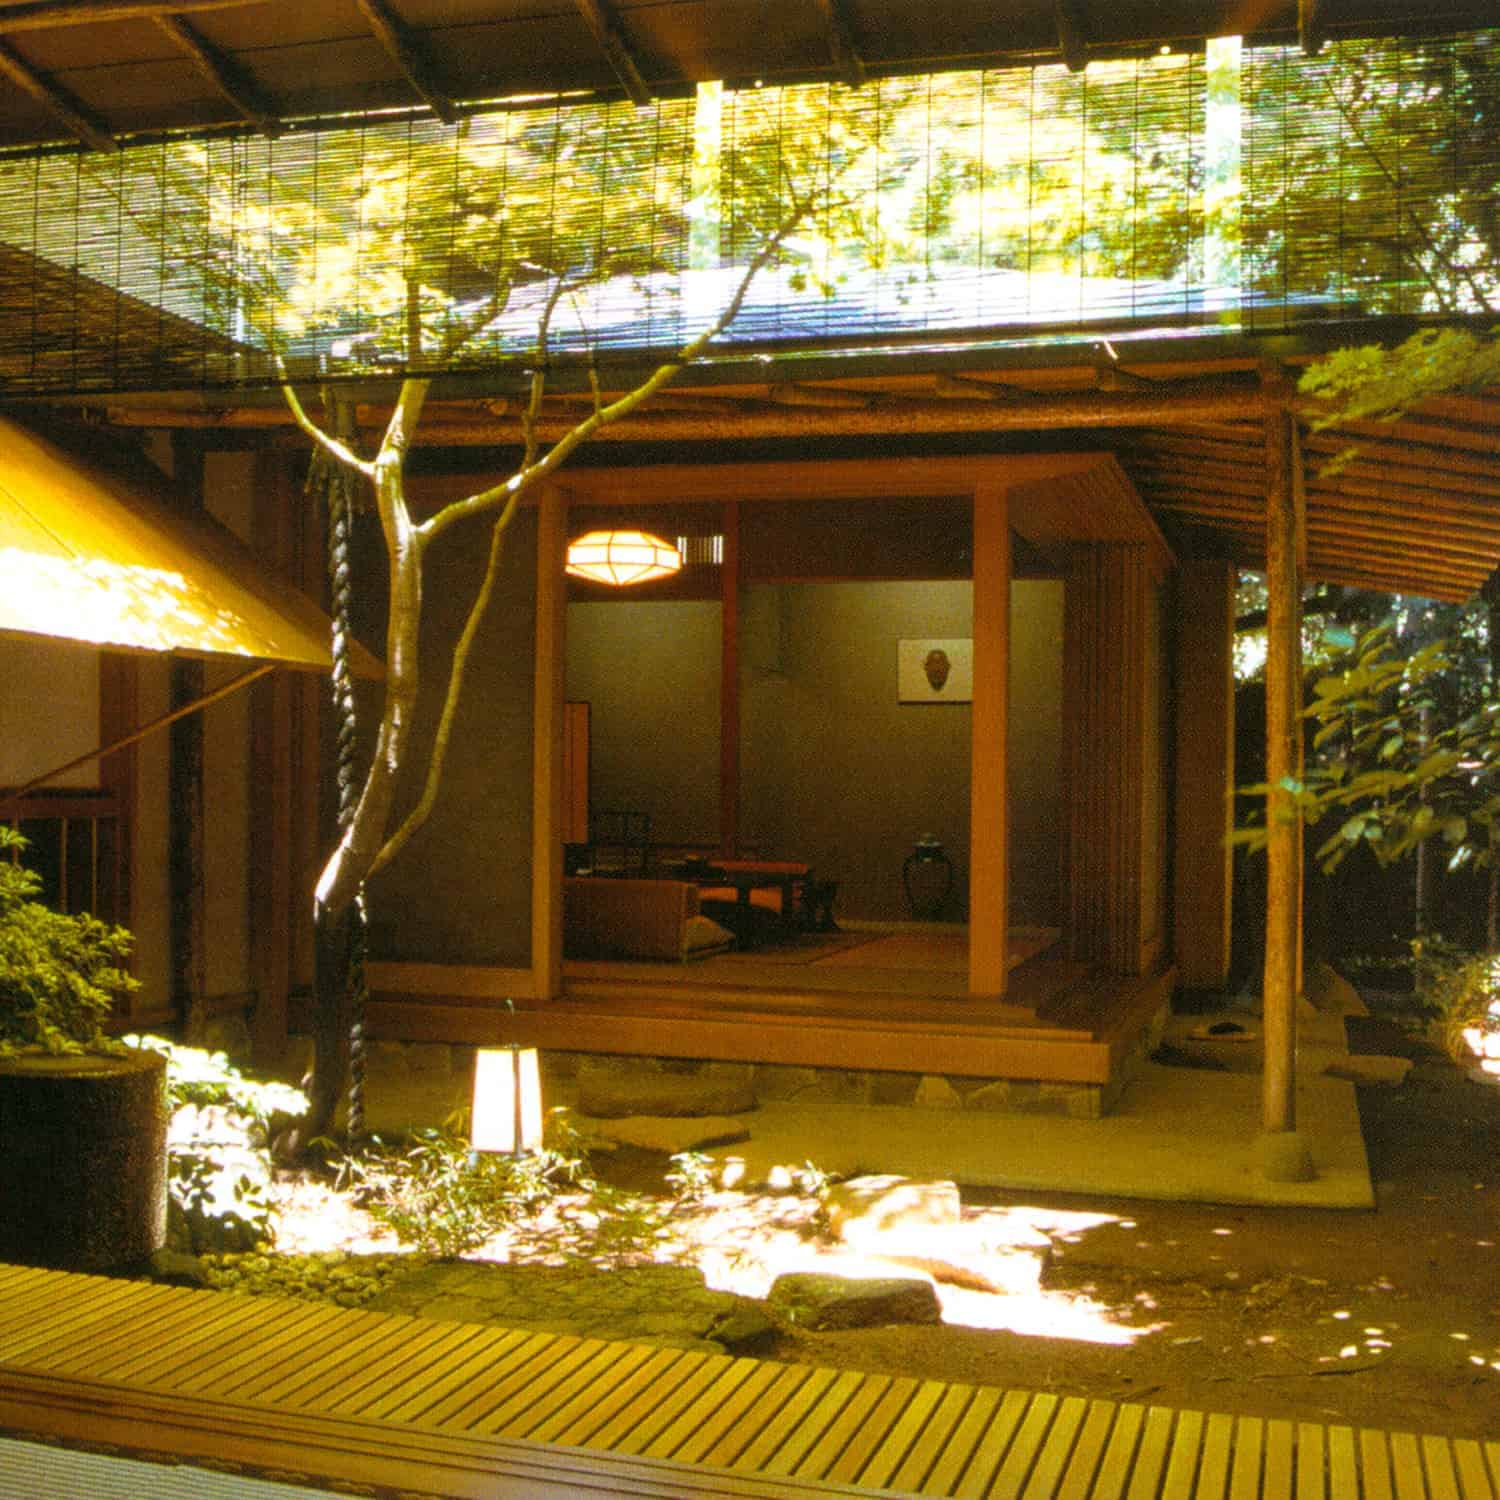 INDOOR + Architecture - Japanese Interior Solution: INNER COURTYARD